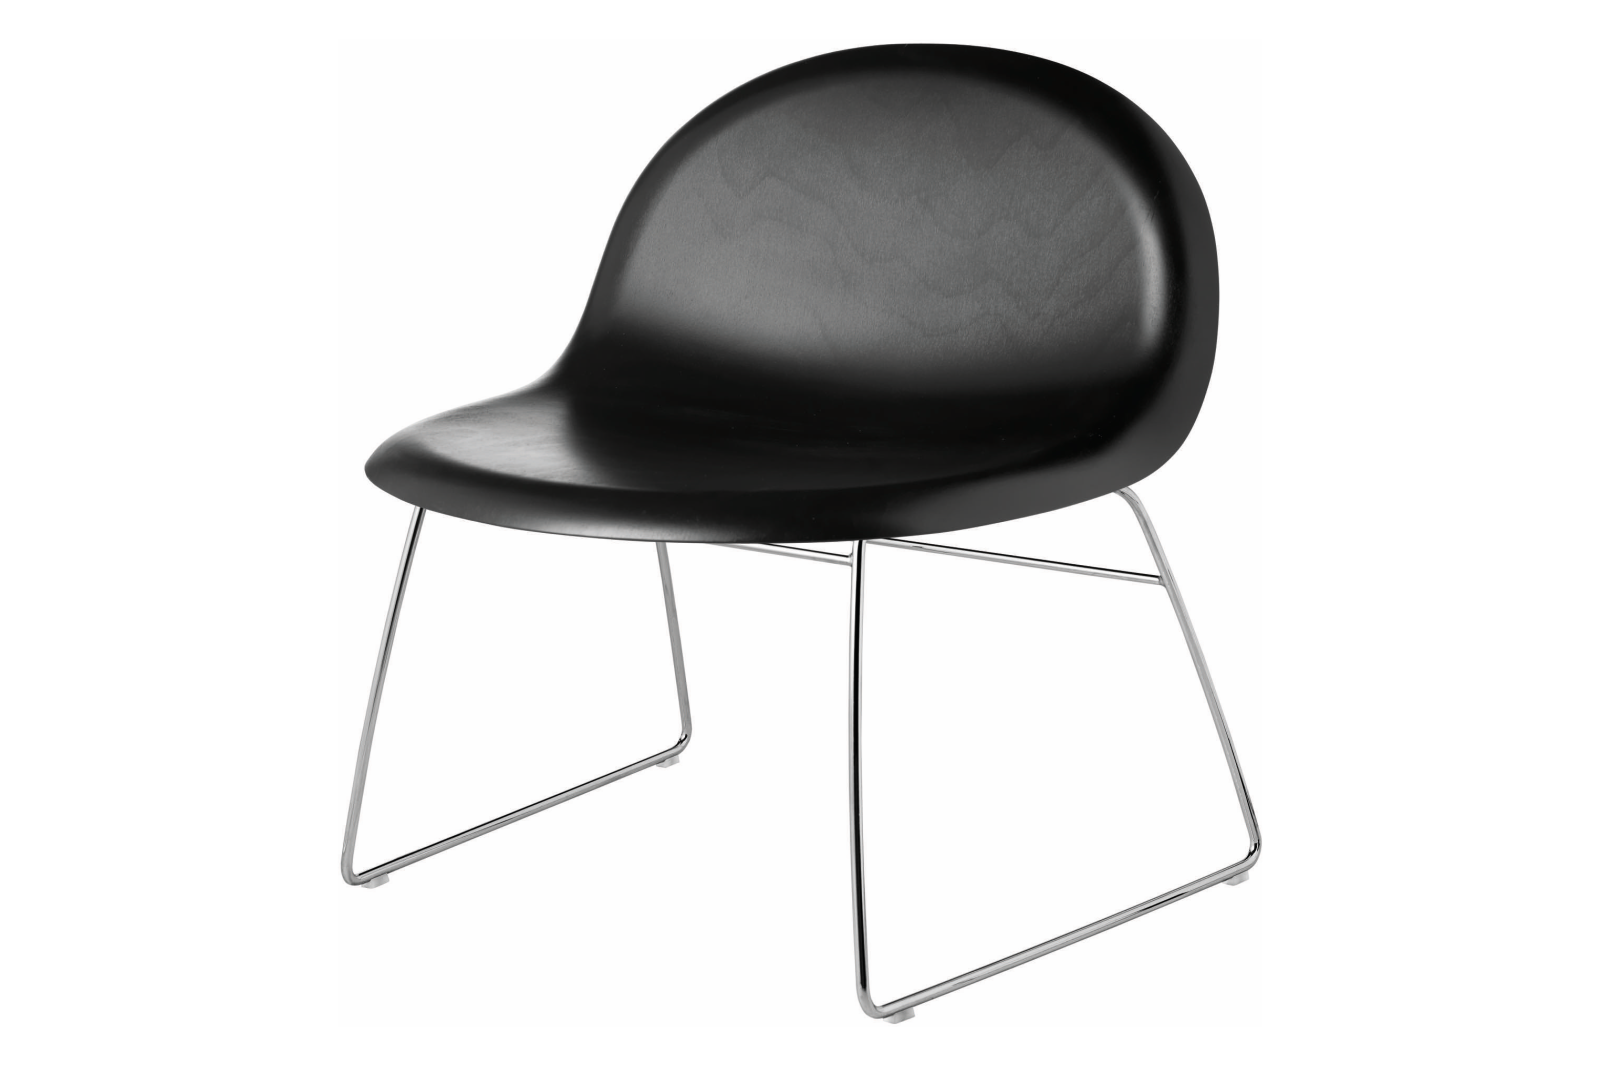 Gubi 3D Lounge Chair Sledge Base - Unupholstered Gubi Wood Black Stained Beech, Gubi Metal Chrome